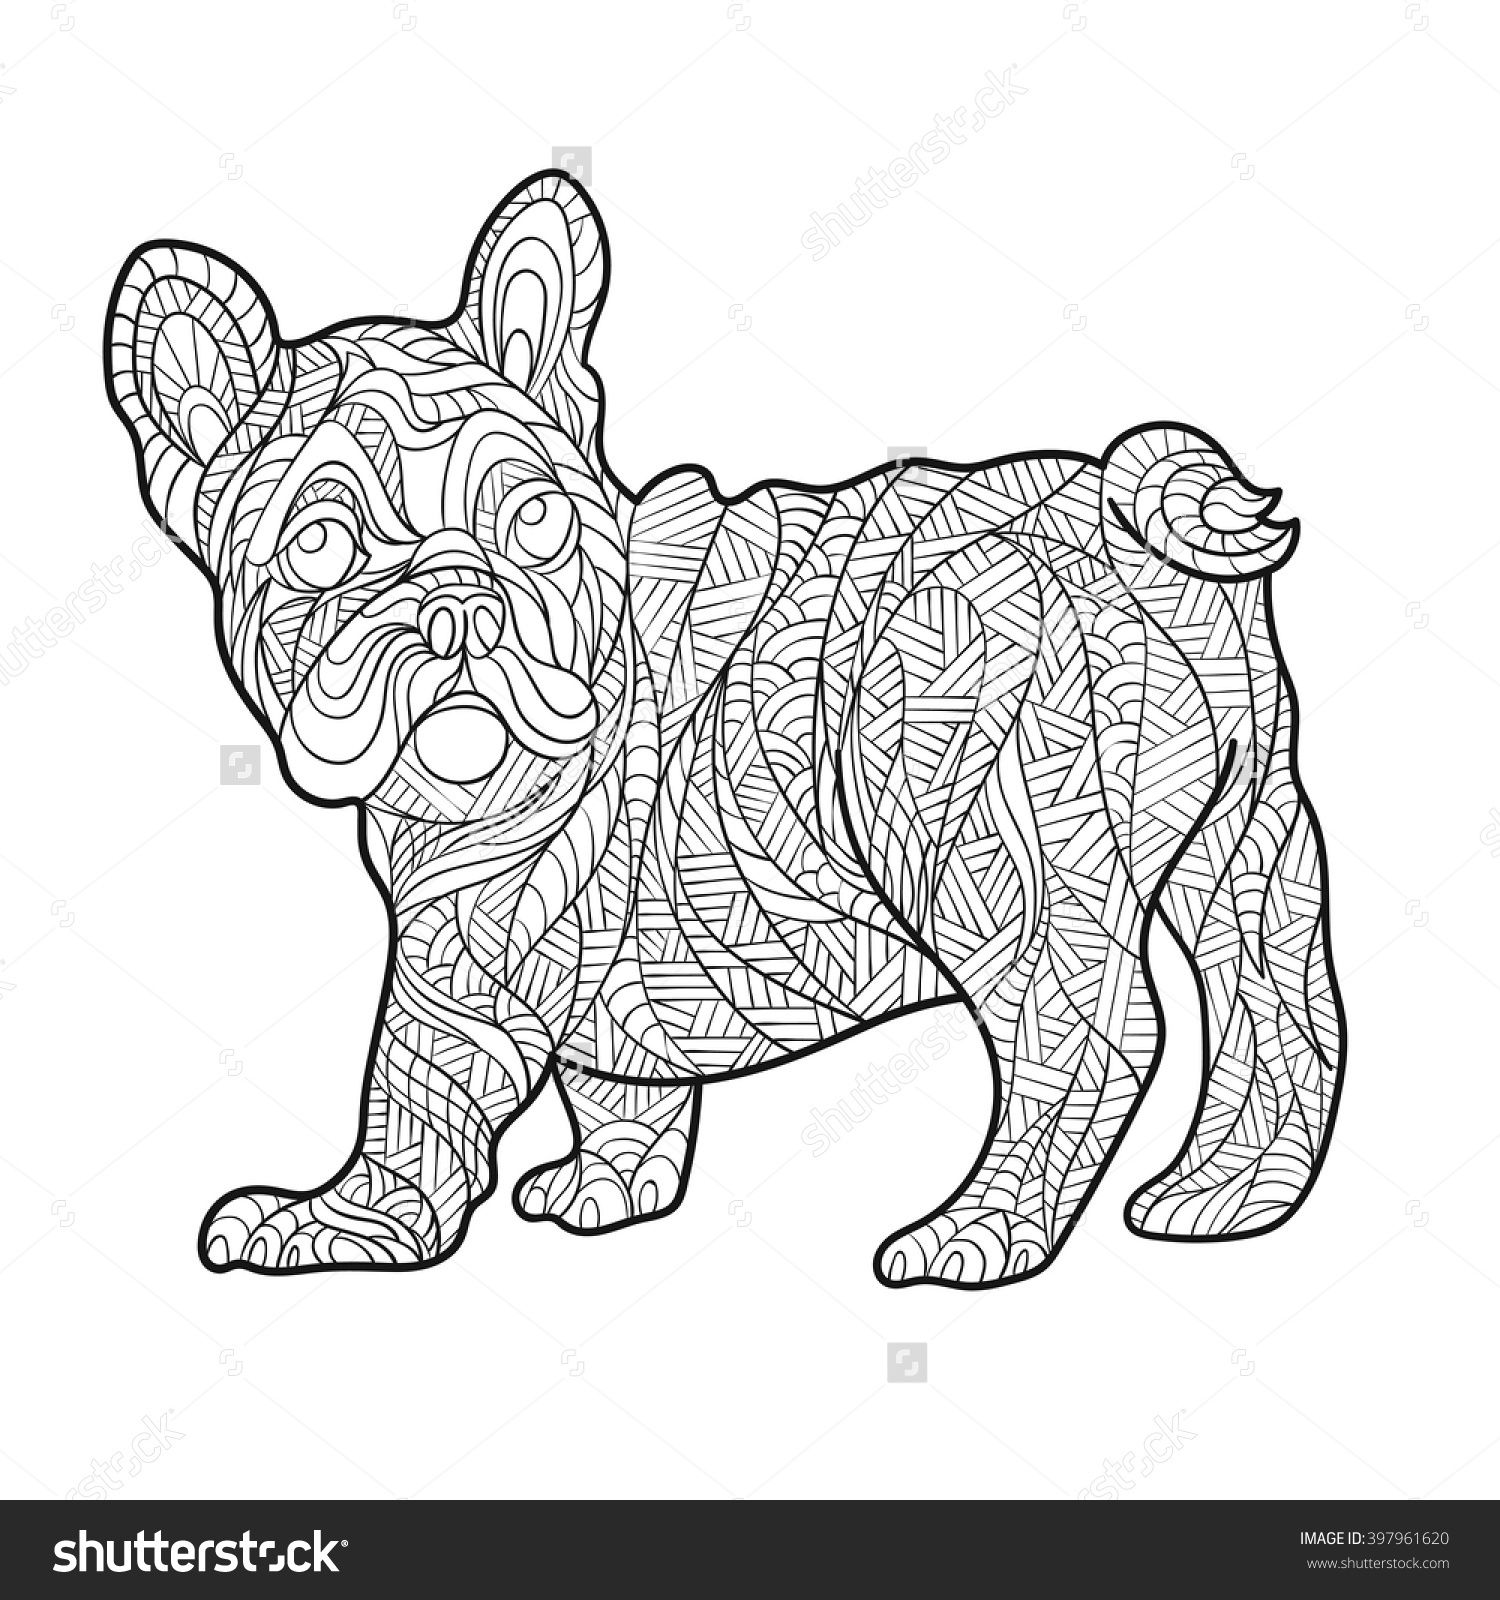 Vector Monochrome Hand Drawn Zentagle Illustration Of French Bulldog Coloring Page With High Details Isolated On White Background Boho Style